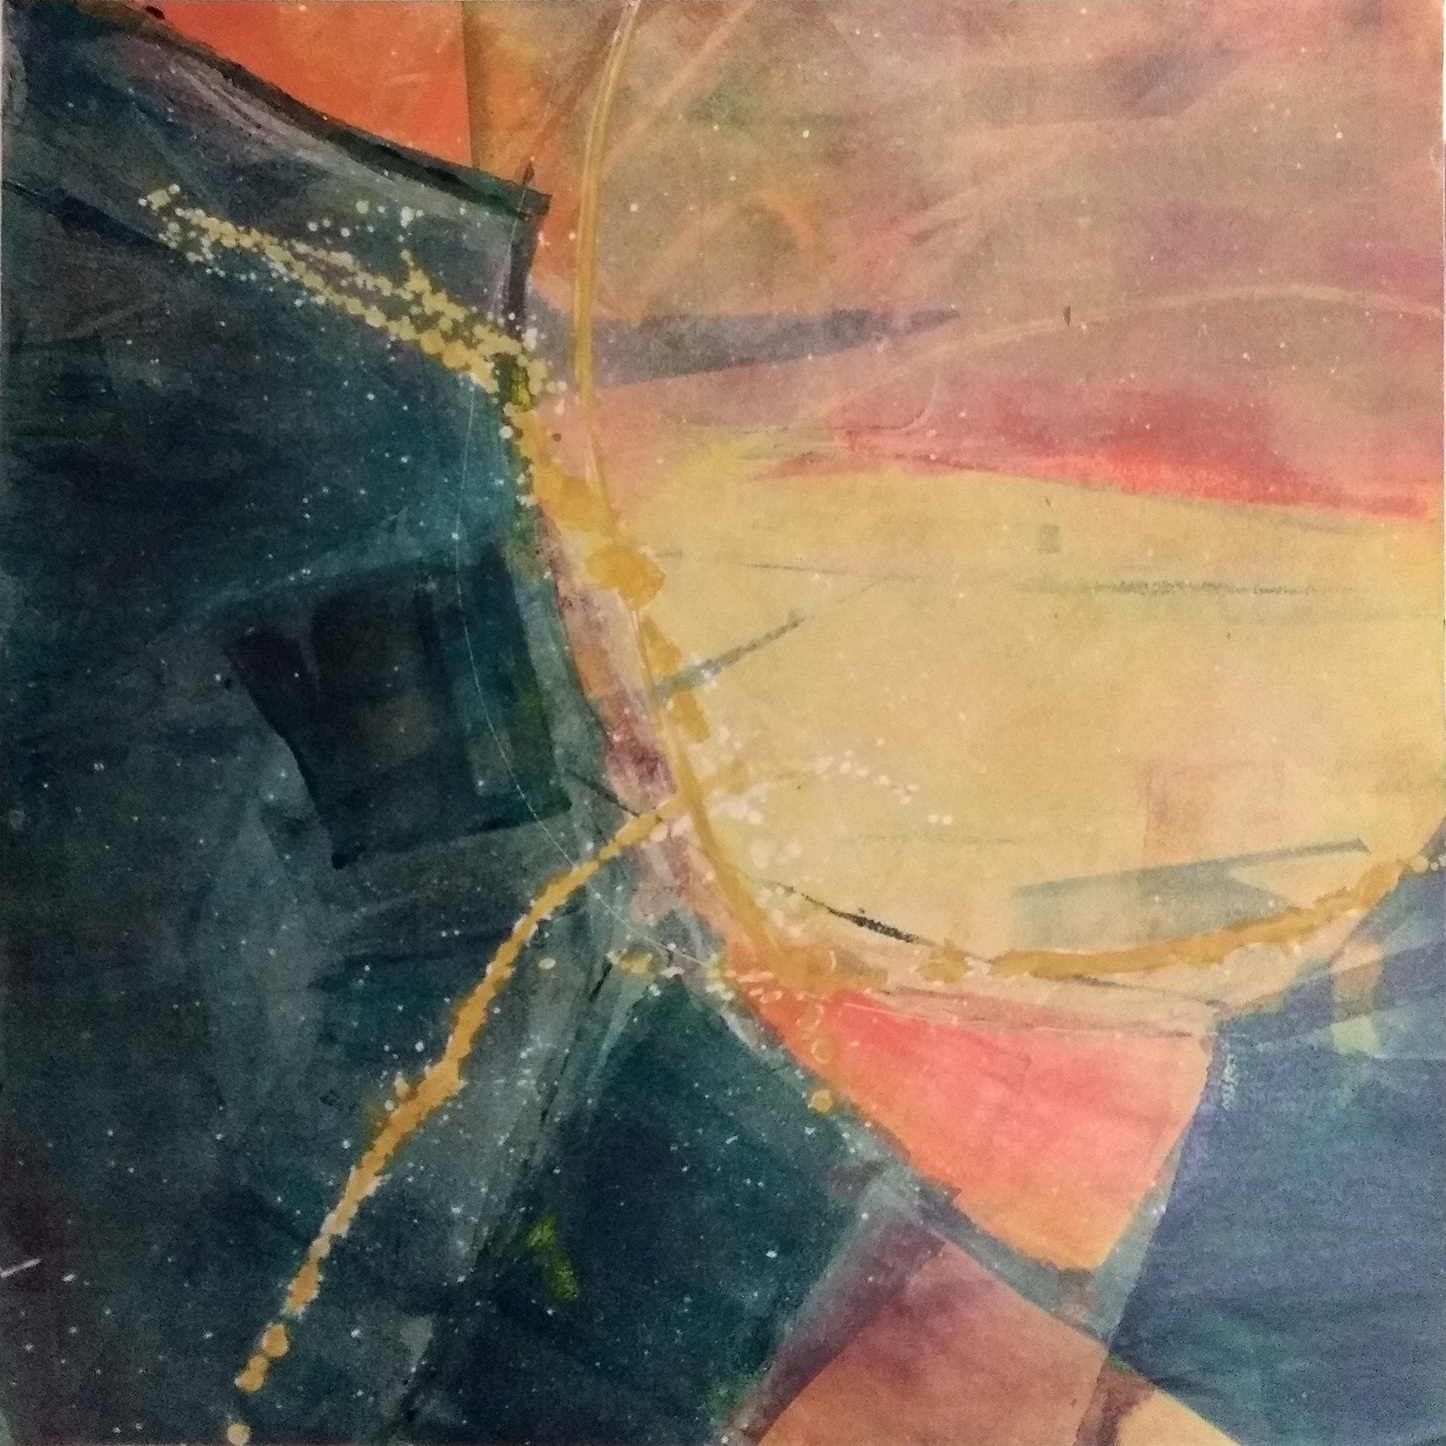 57 - oil based ink monoprint, 51 x 51 cm